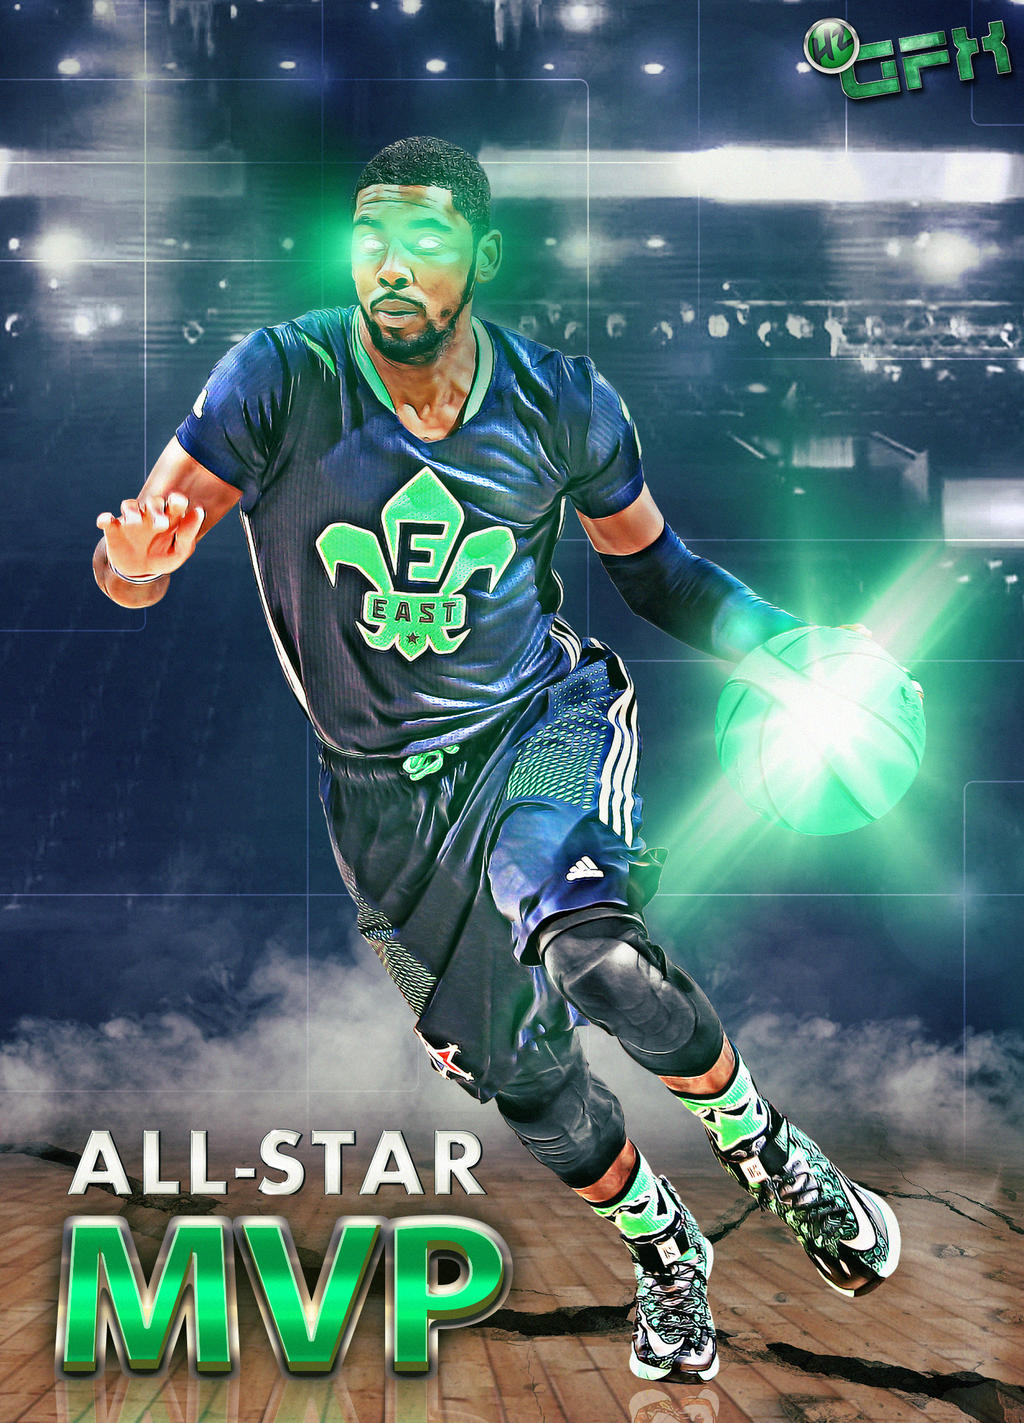 2014 nba allstar mvp kyrie irving by hzdesigns on